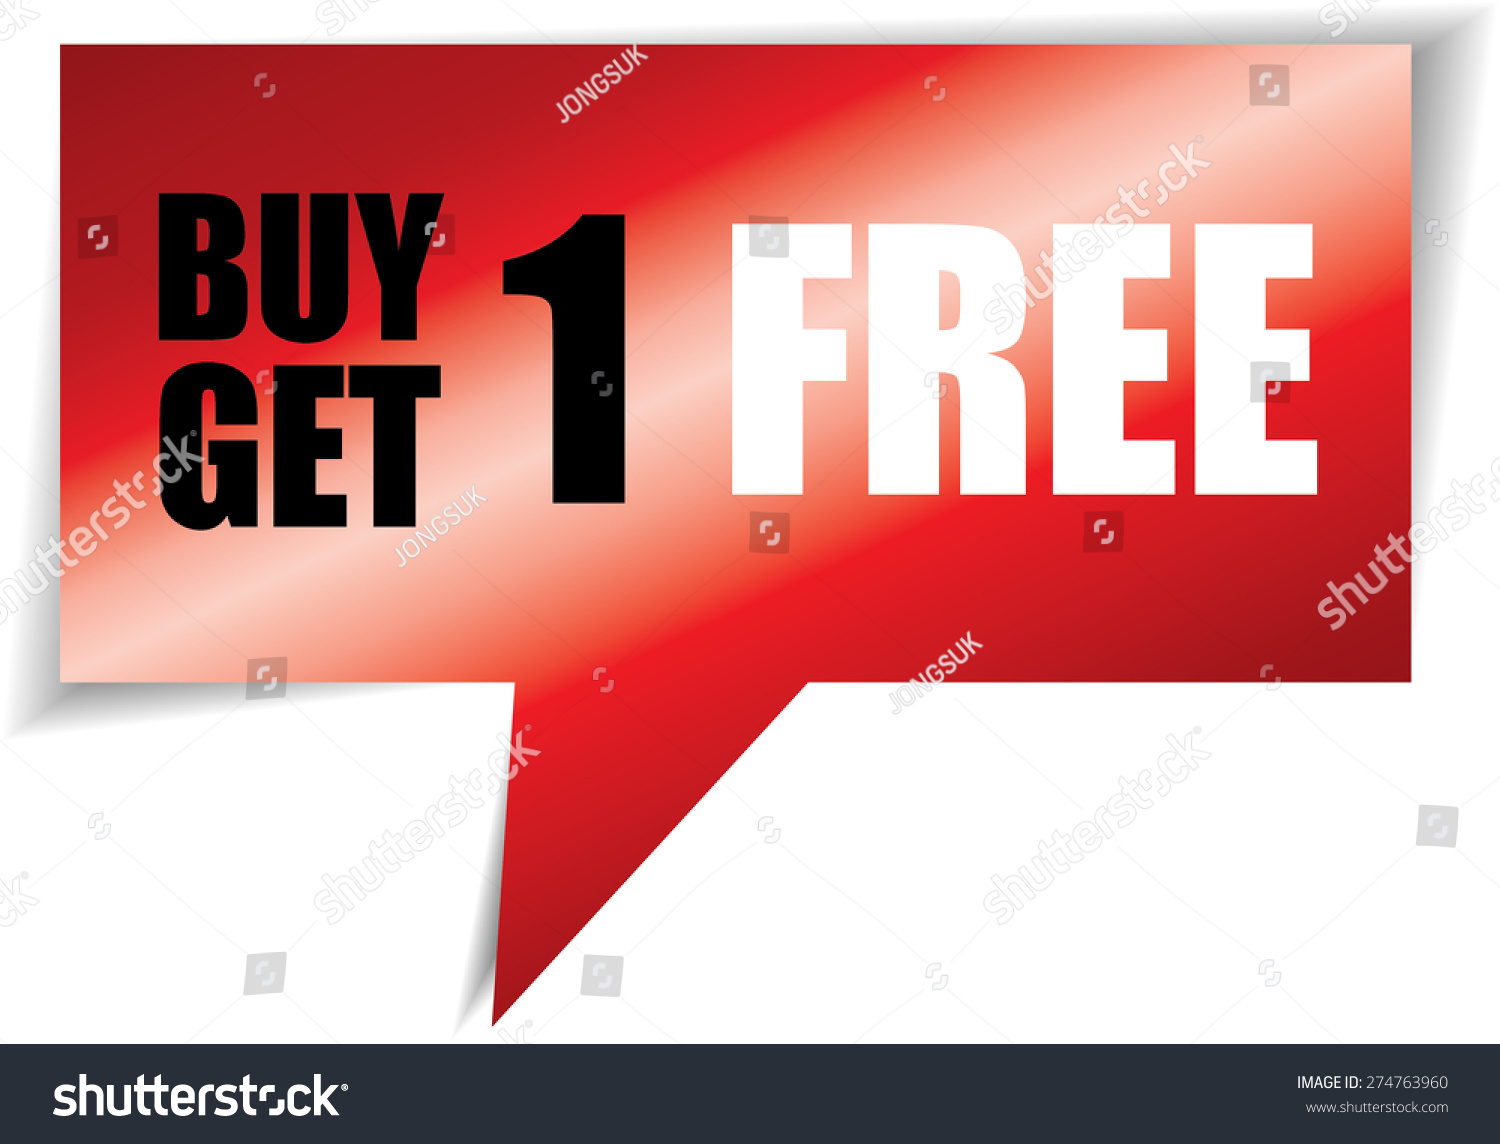 buy one get one speech stock illustration  buy one get one speech black square template promotional